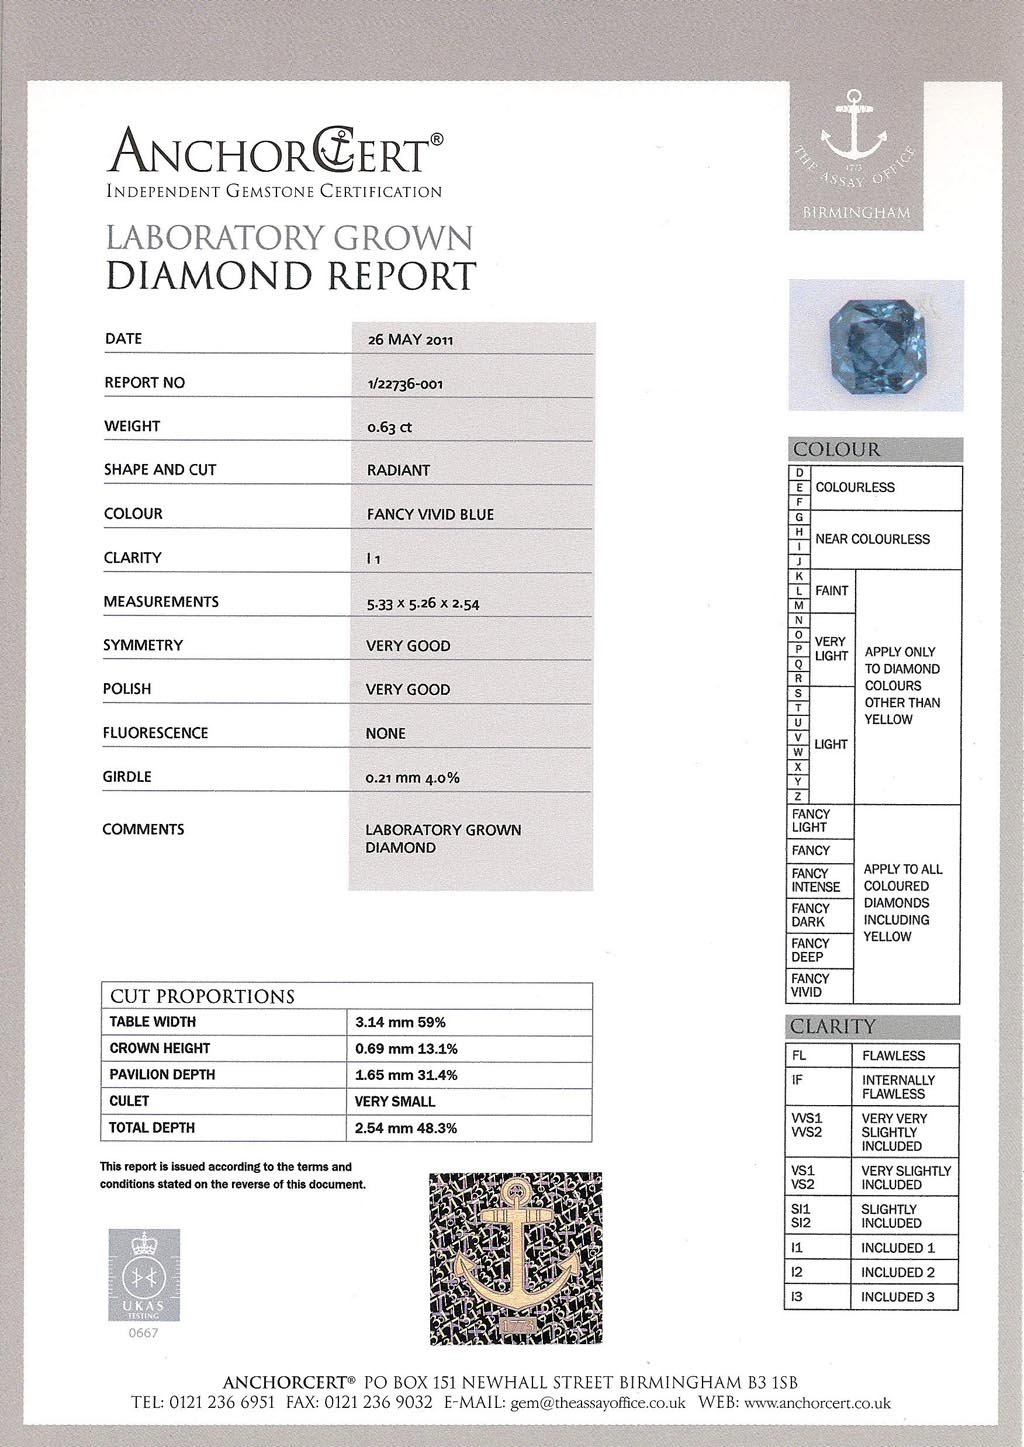 Heart In Diamond Certificate -- AnchorCert